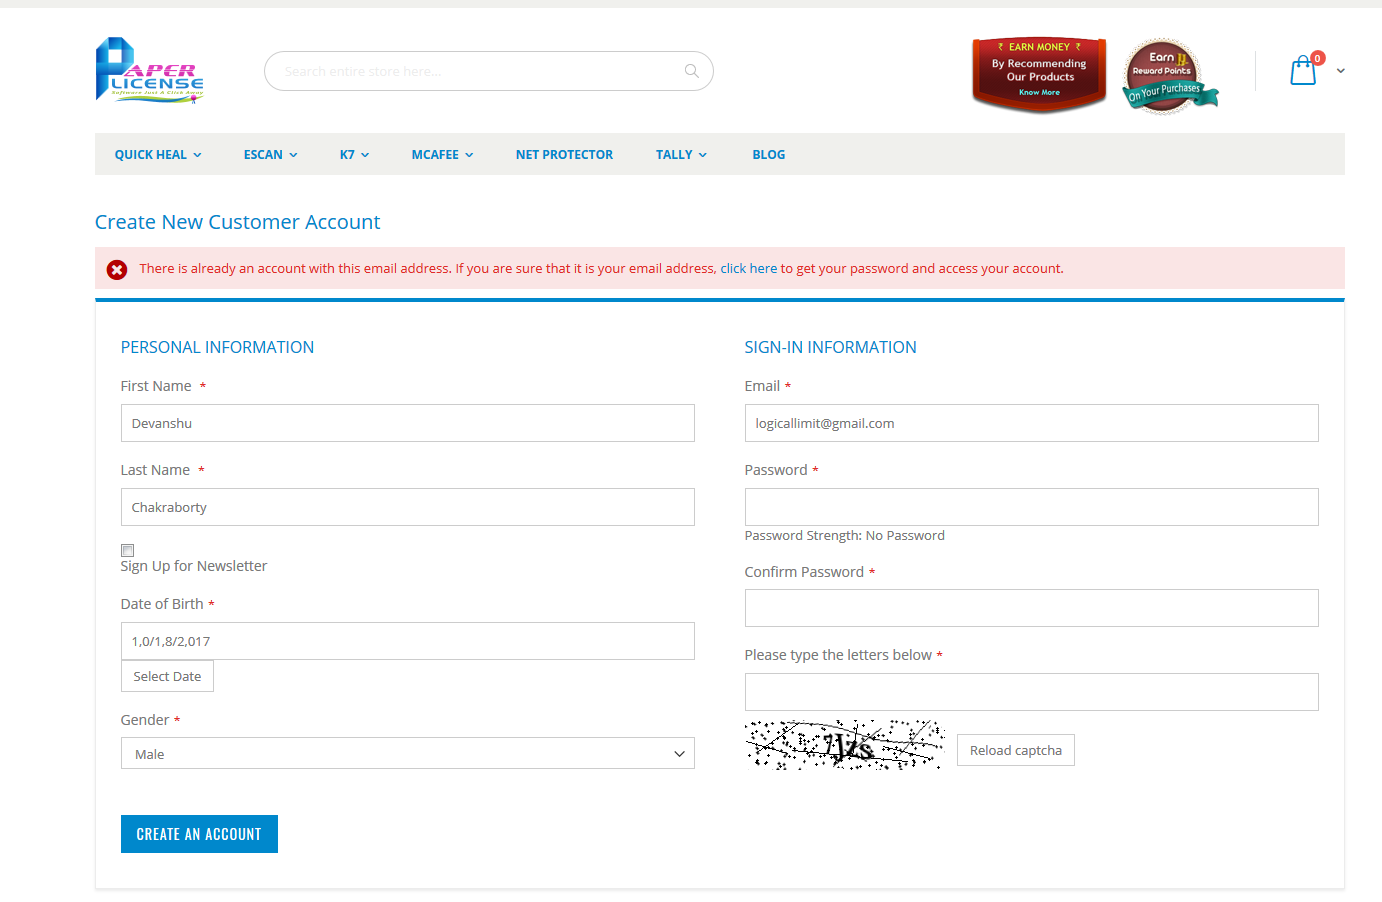 Date of Birth field in customer registration form gets obfuscated on.